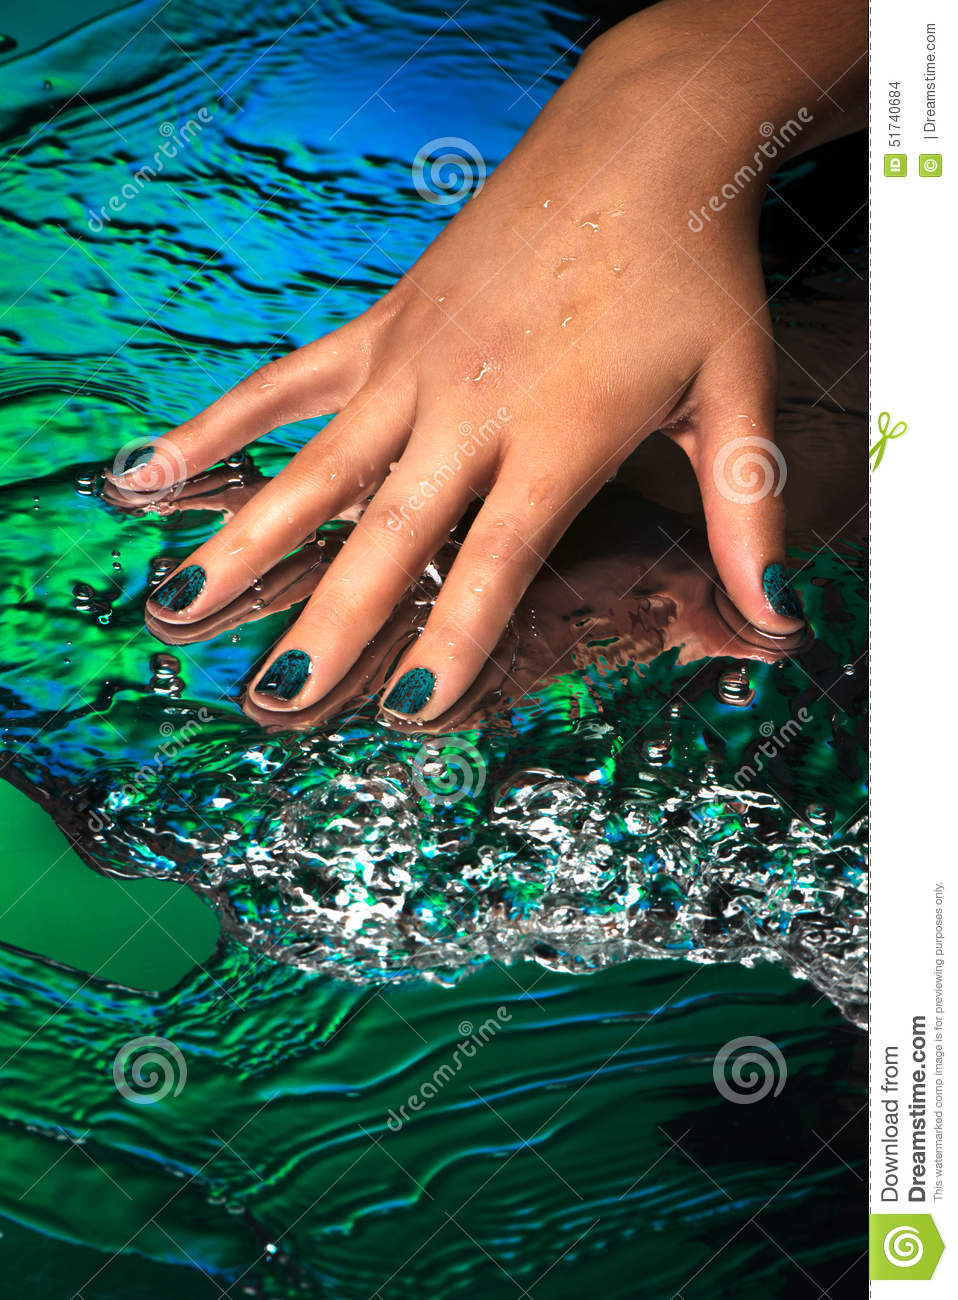 Hand With Creative Nail Design Laying On Water Background Stock